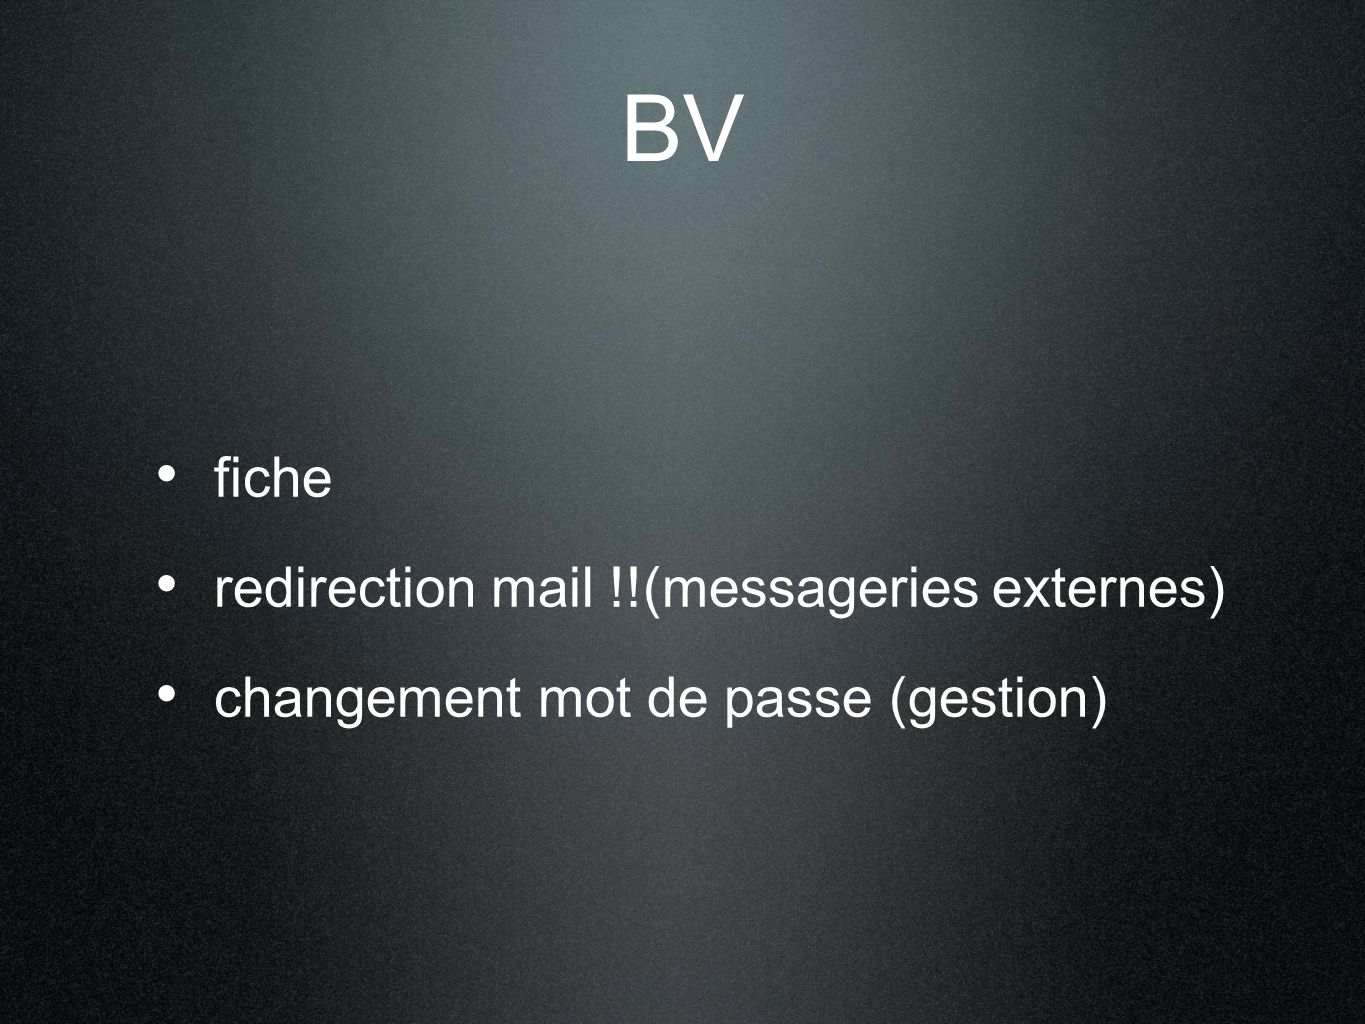 BV fiche redirection mail !!(messageries externes)